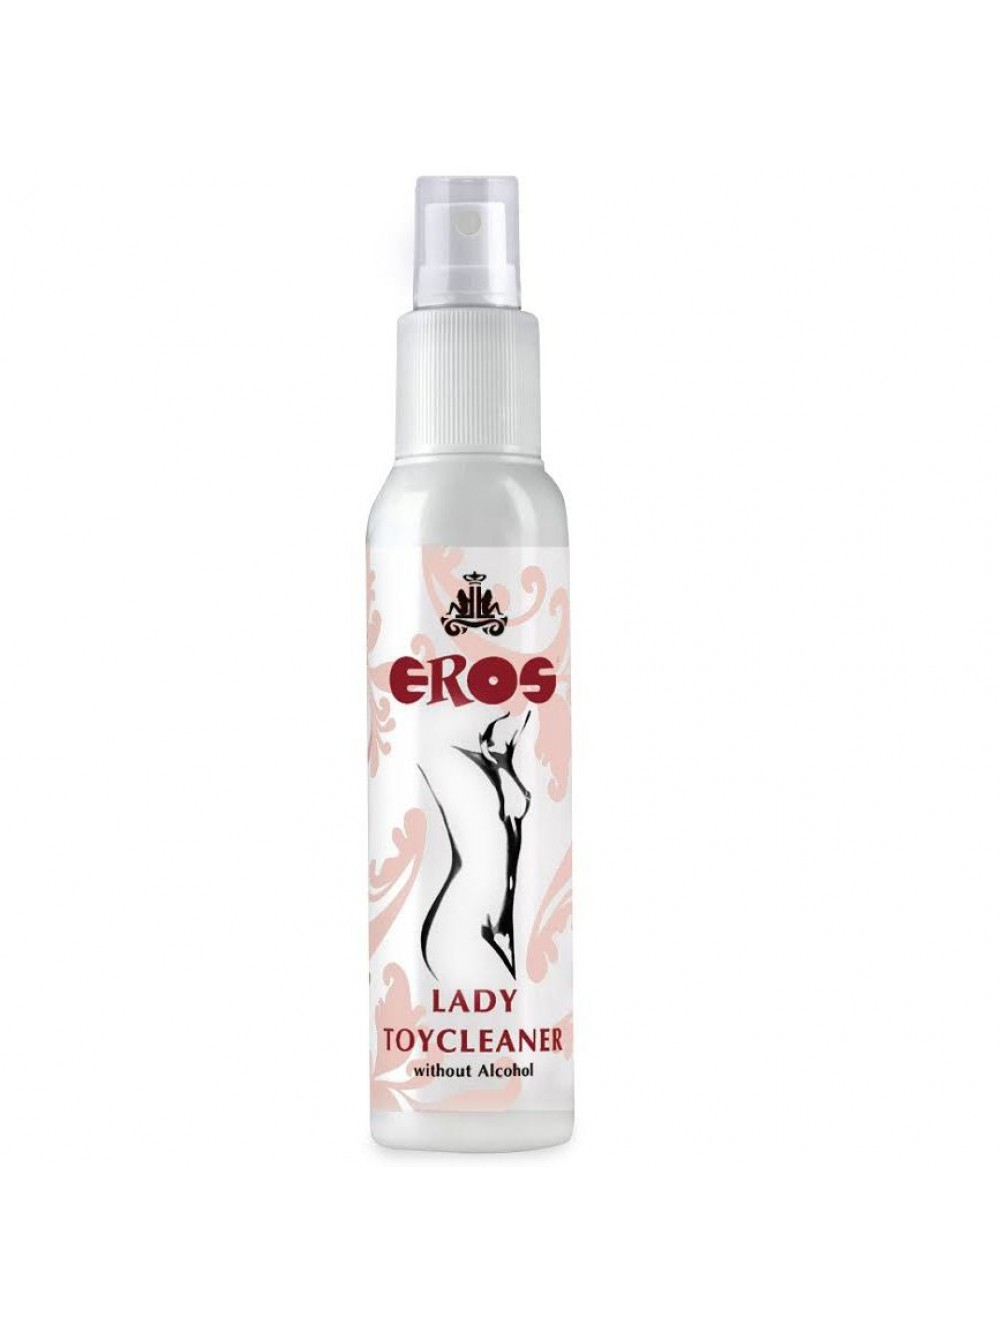 EROS LADY TOYCLEANER WITHOUT ALCOHOL